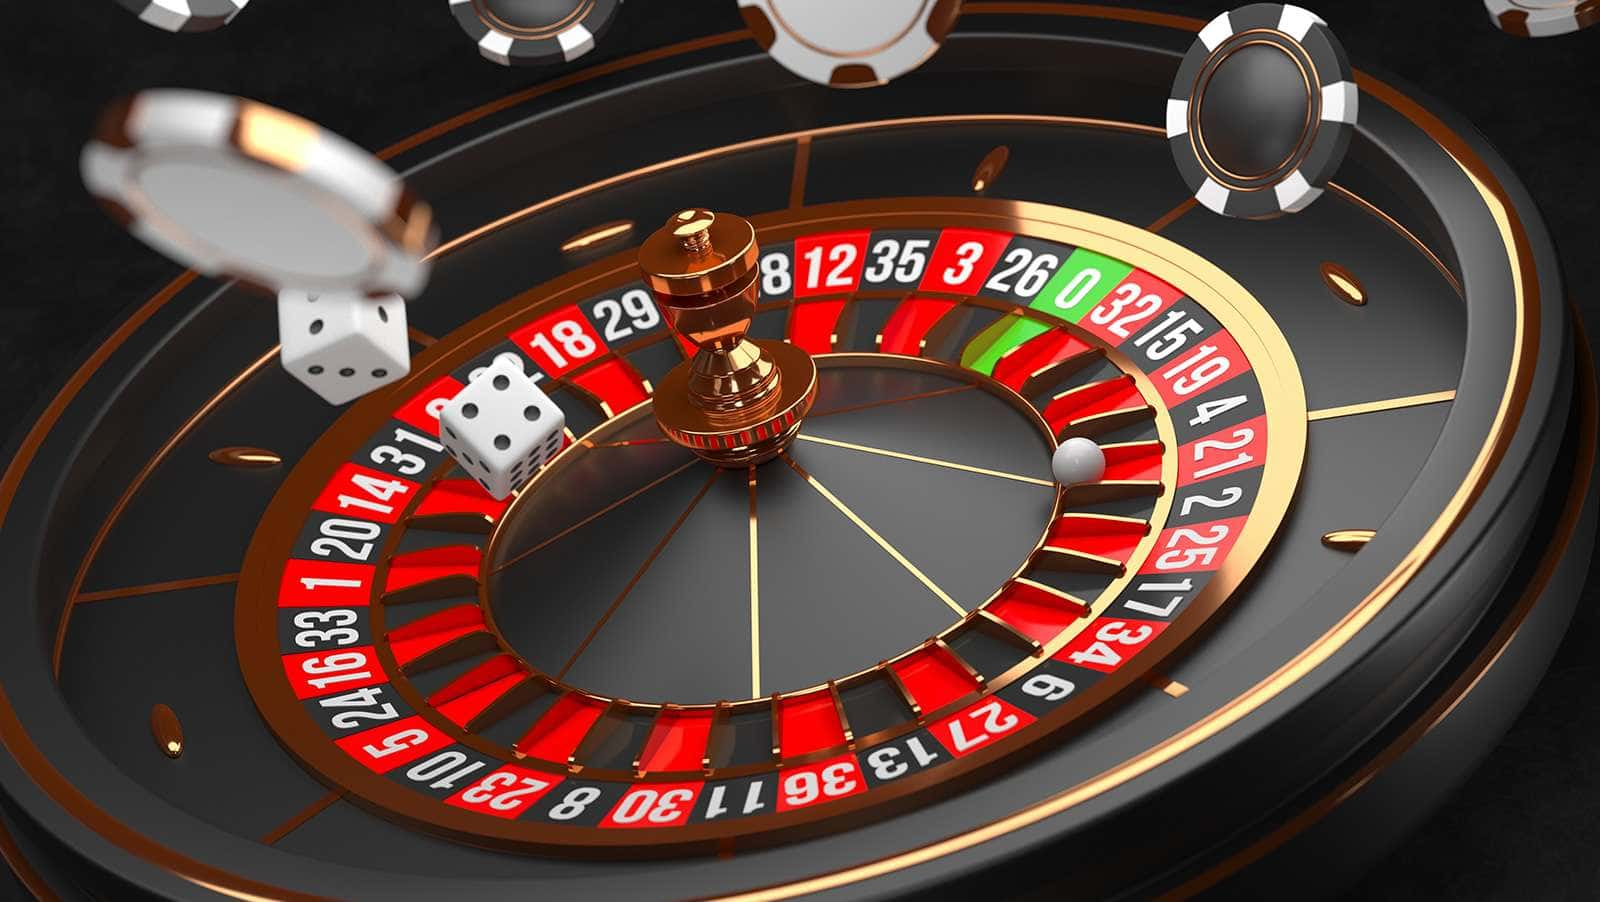 The advantages of playing a trusted online casino on official sites